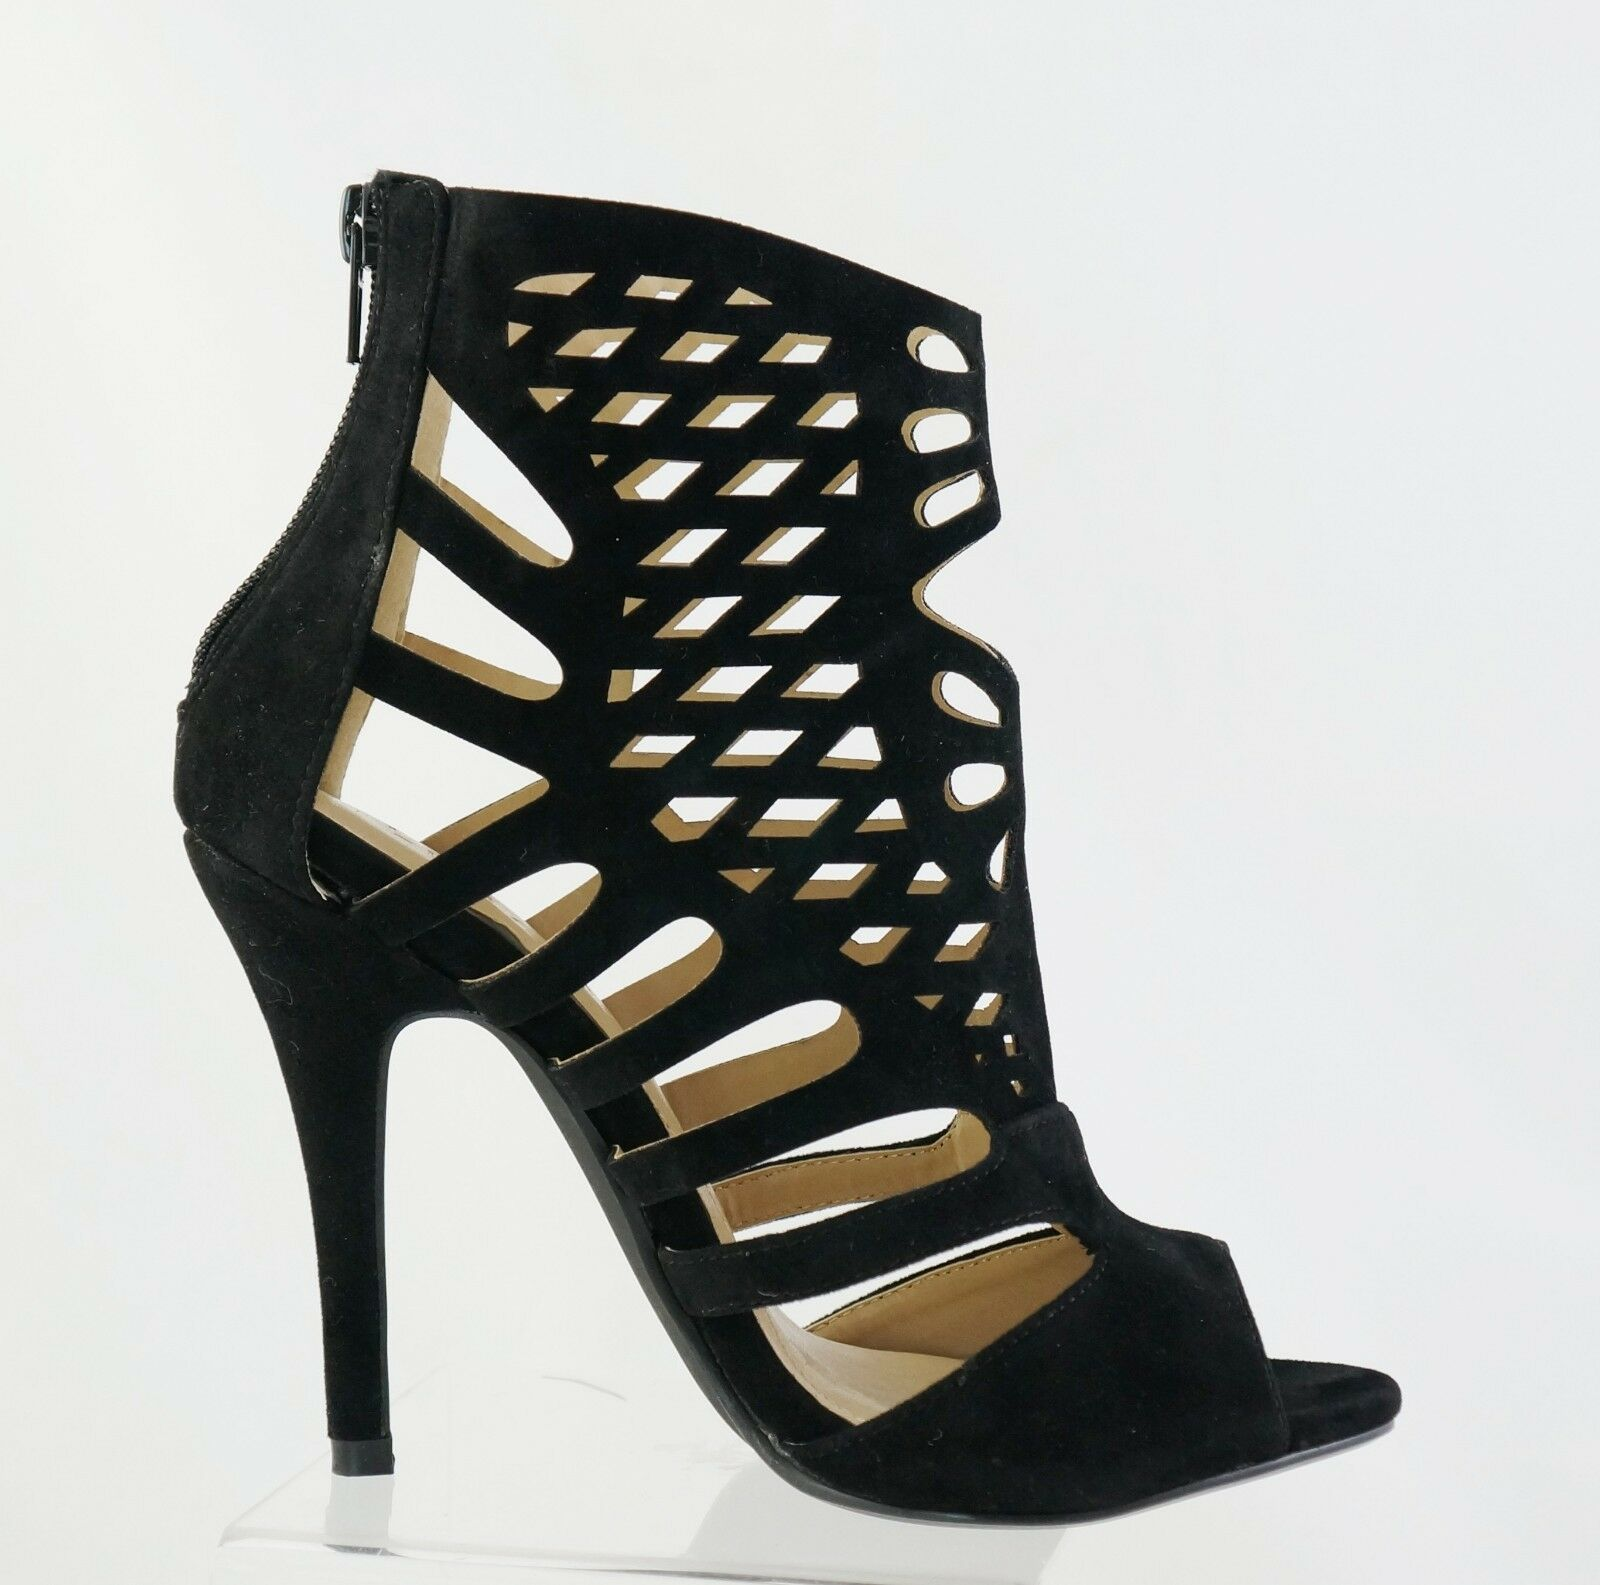 New Anya-8 Leatherette Caged Cut Out Stiletto High Heel